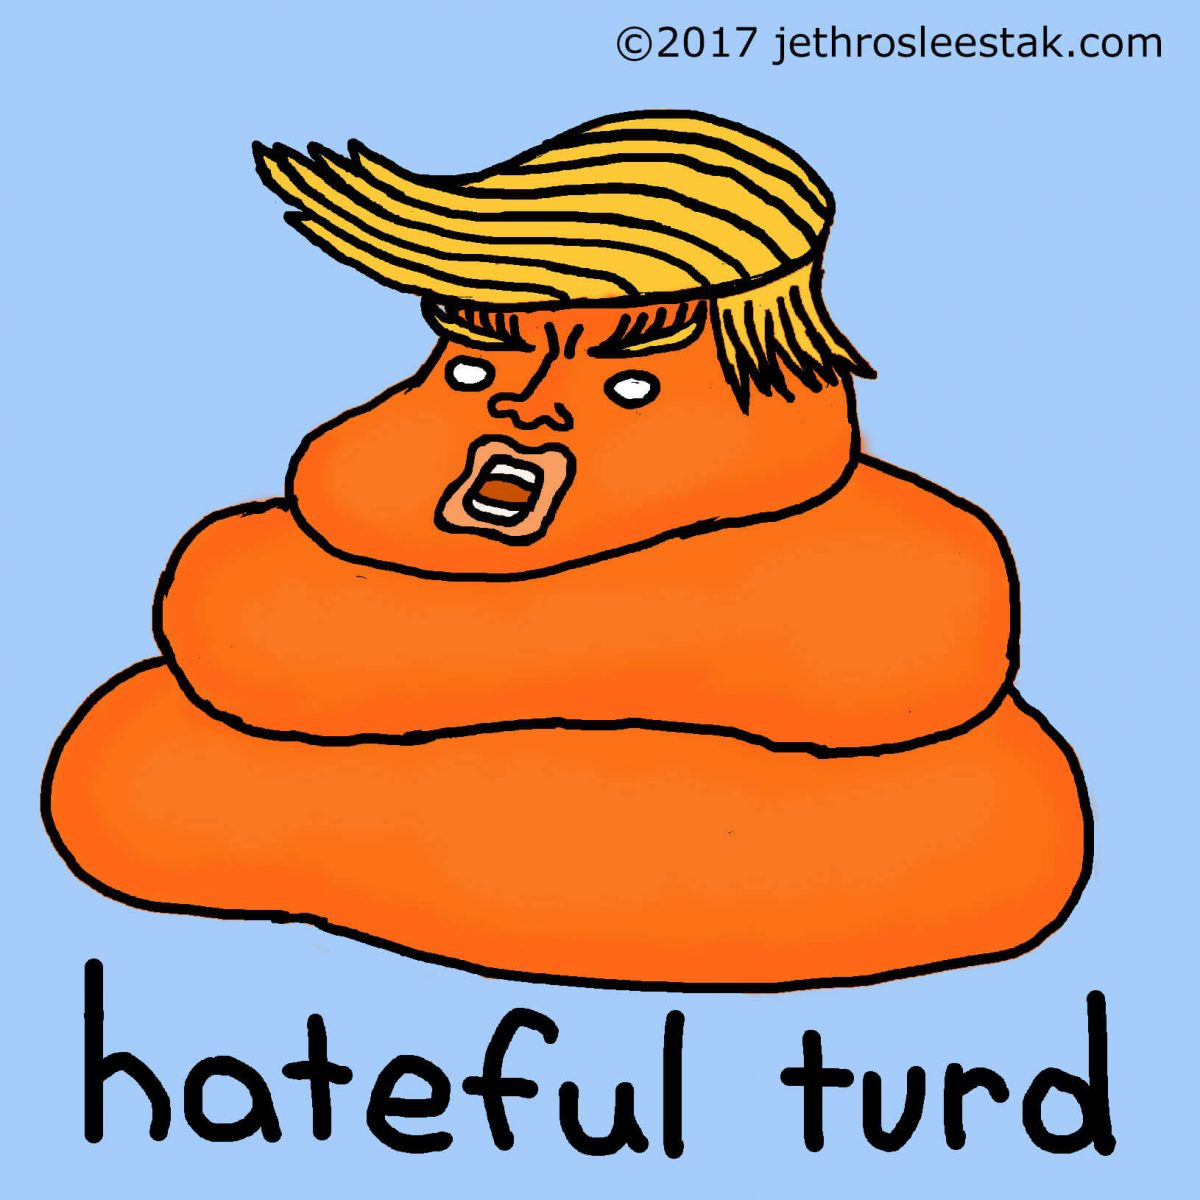 Hateful Turd Comic Strip Character